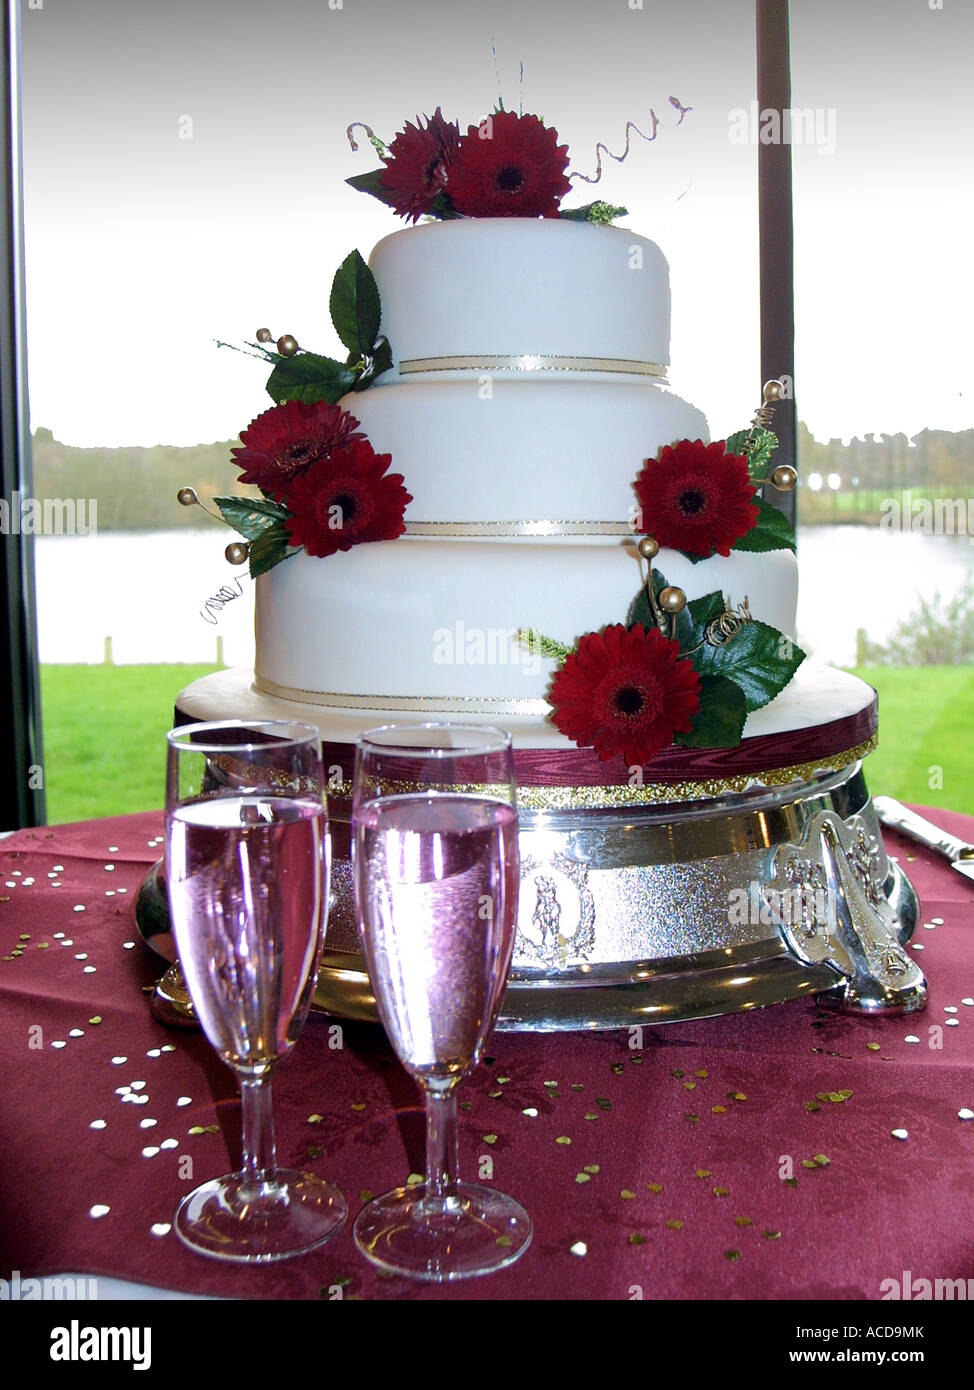 A 3 Tier White Wedding Cake With Red Roses As Decorations And 2 Full Champagne Glasses In The Foreground